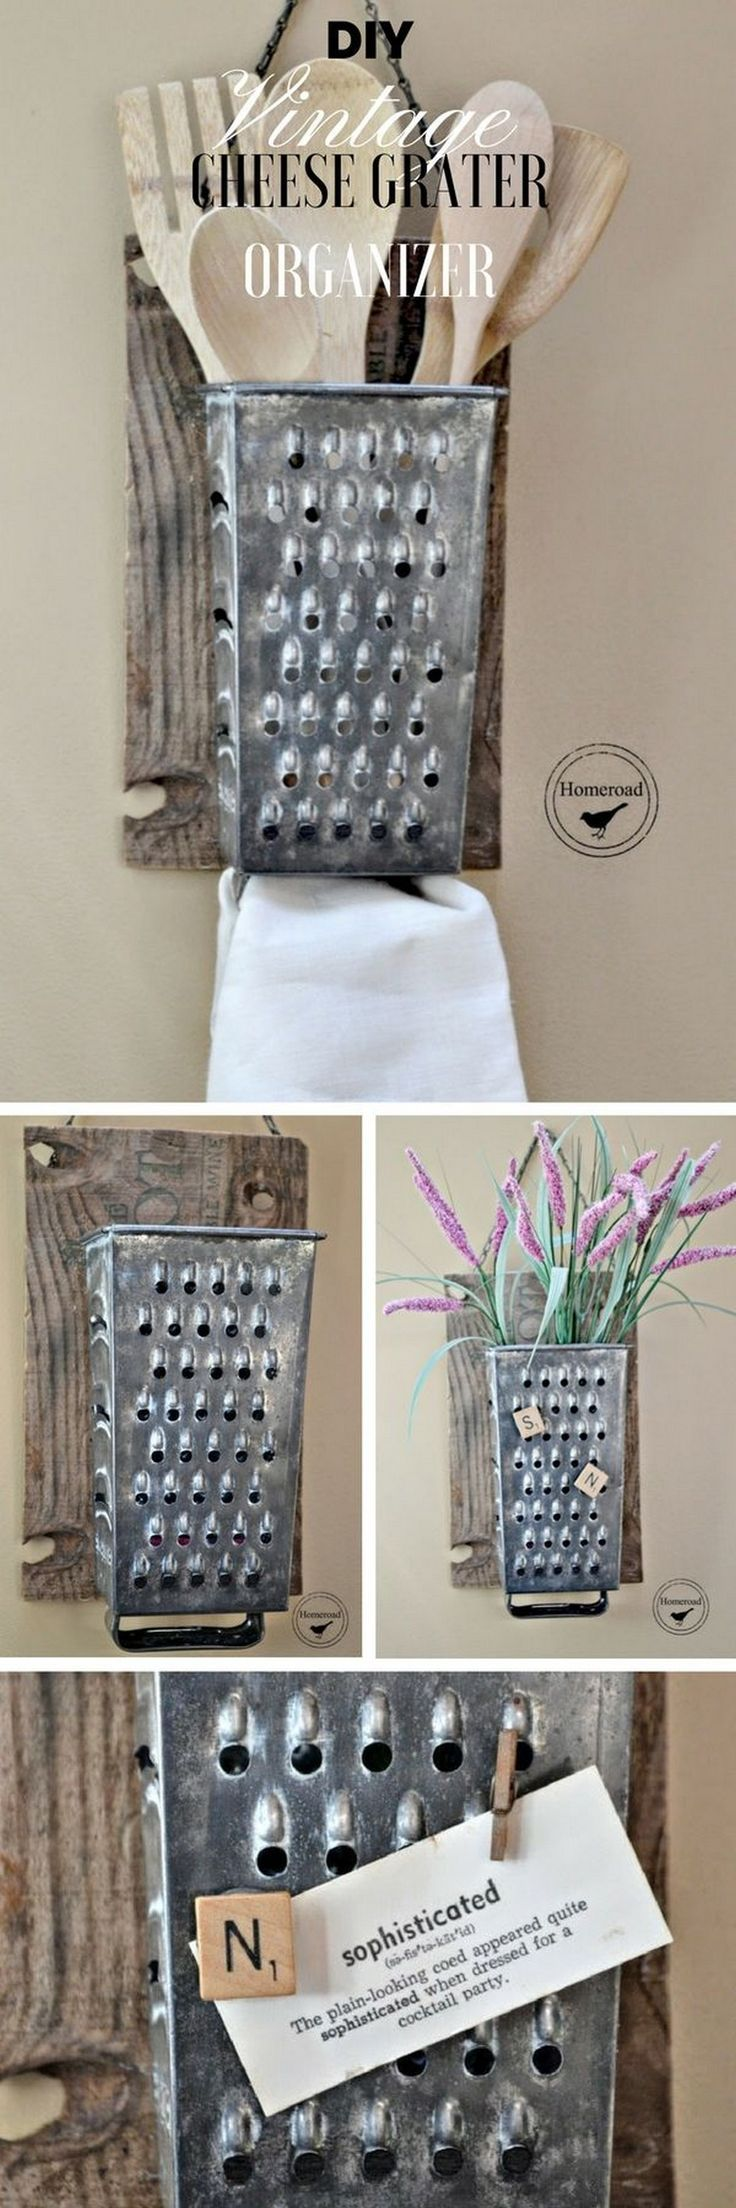 Best 25 rustic home decorating ideas on pinterest dog for Cheap decorative items